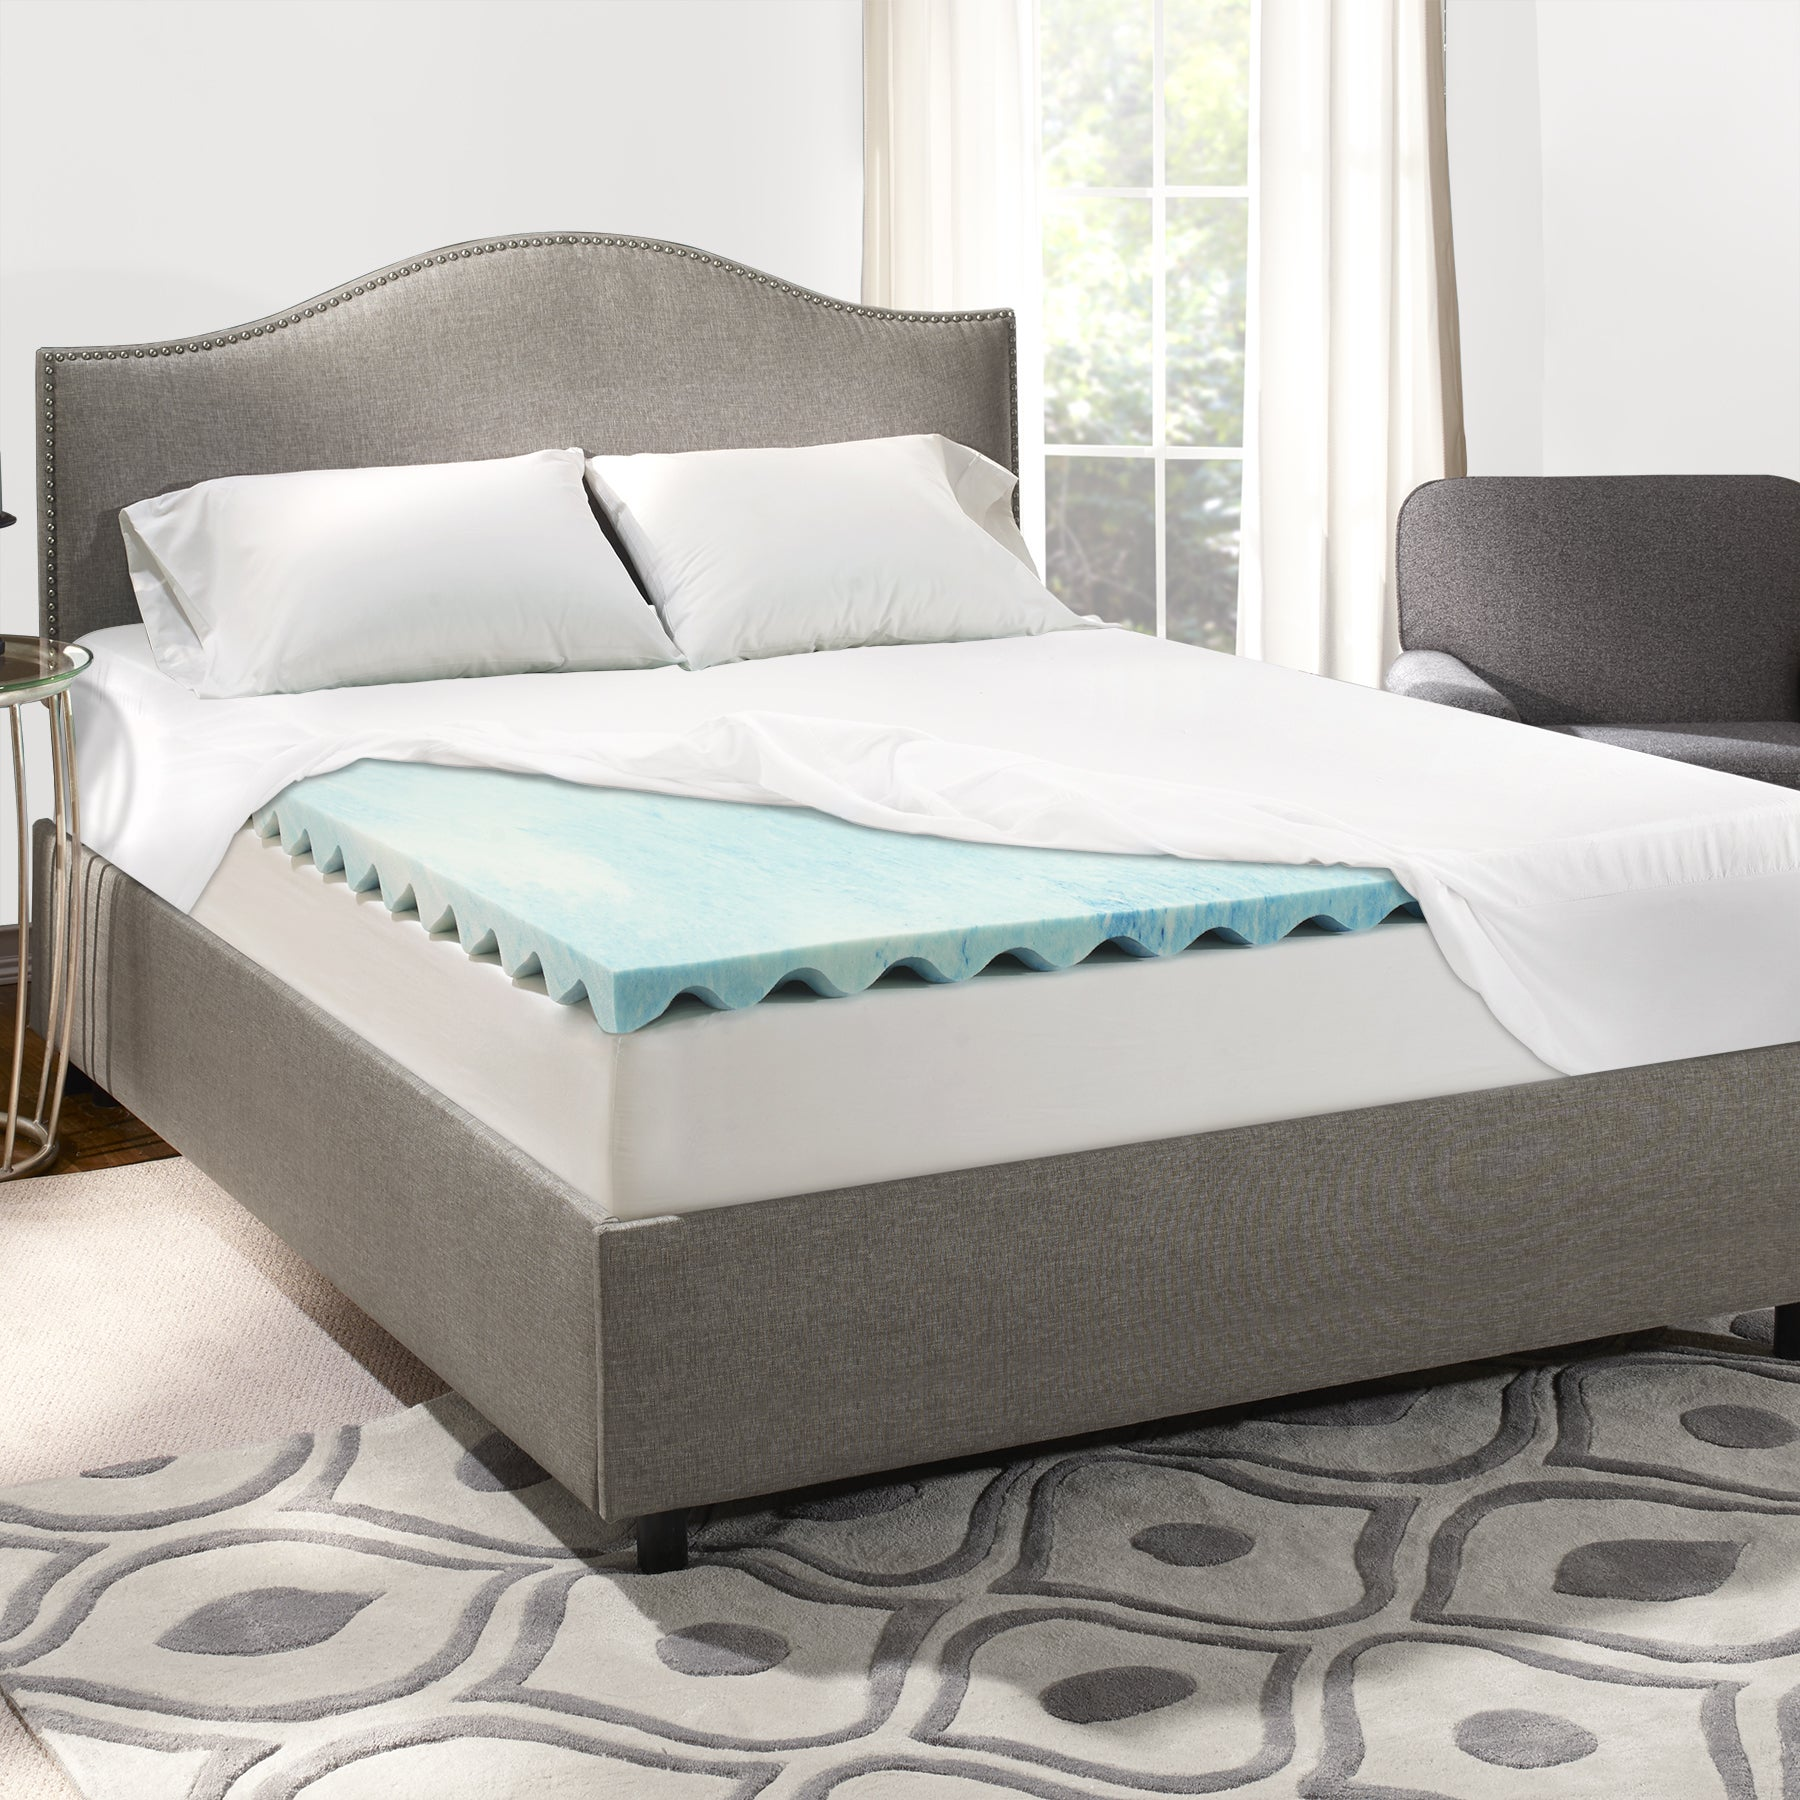 Shop Sleep Innovations 3 Inch Swirl Gel Memory Foam Mattress